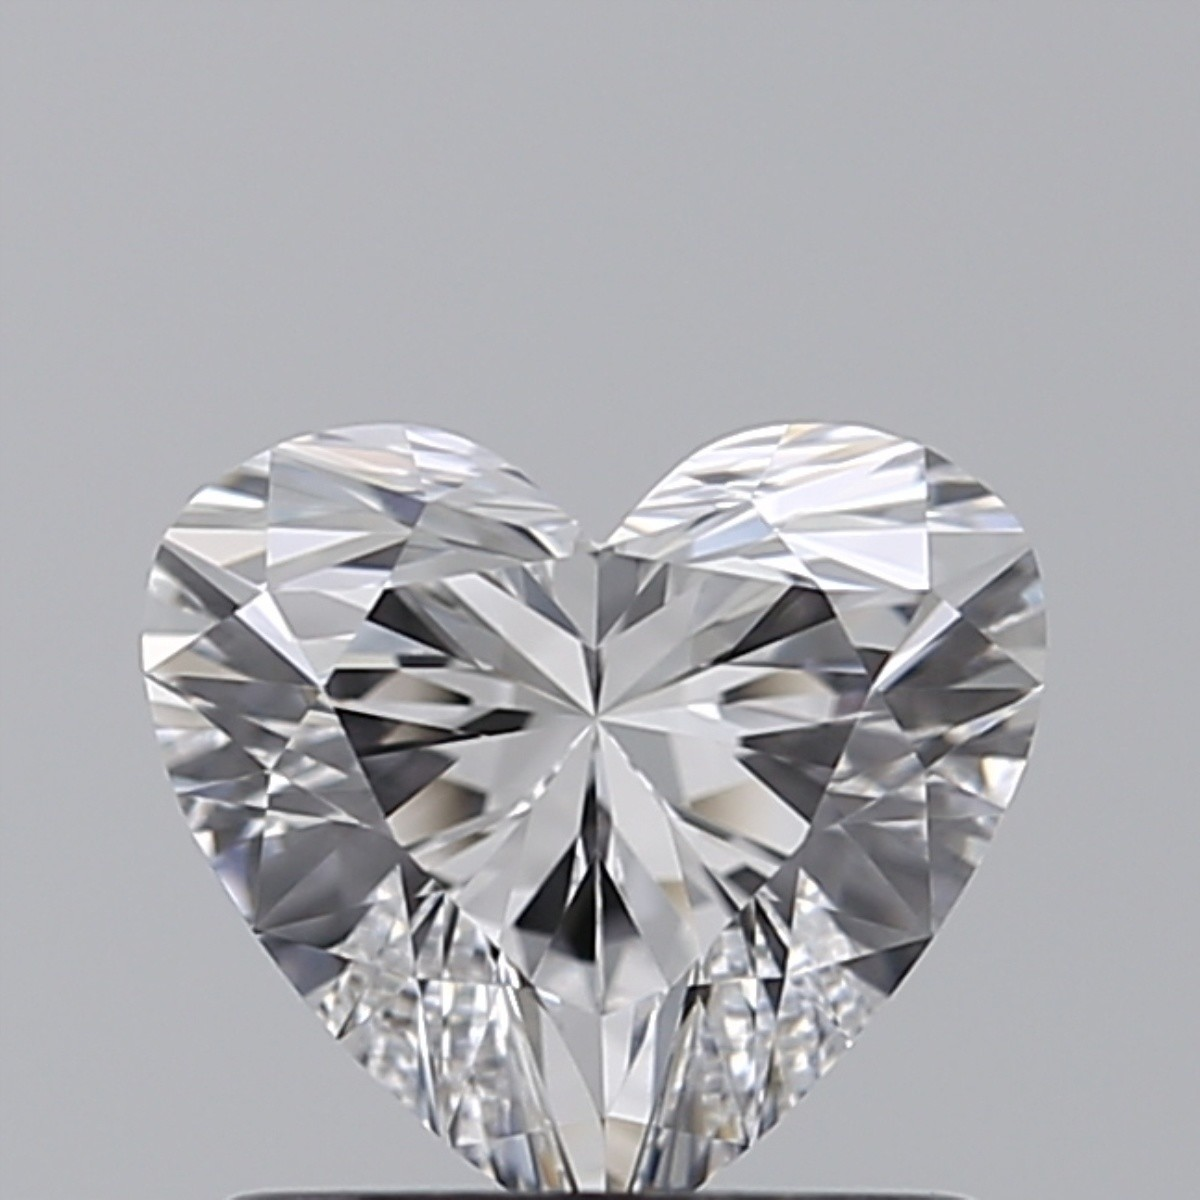 0.81 Carat Heart Diamond (D/VVS1)